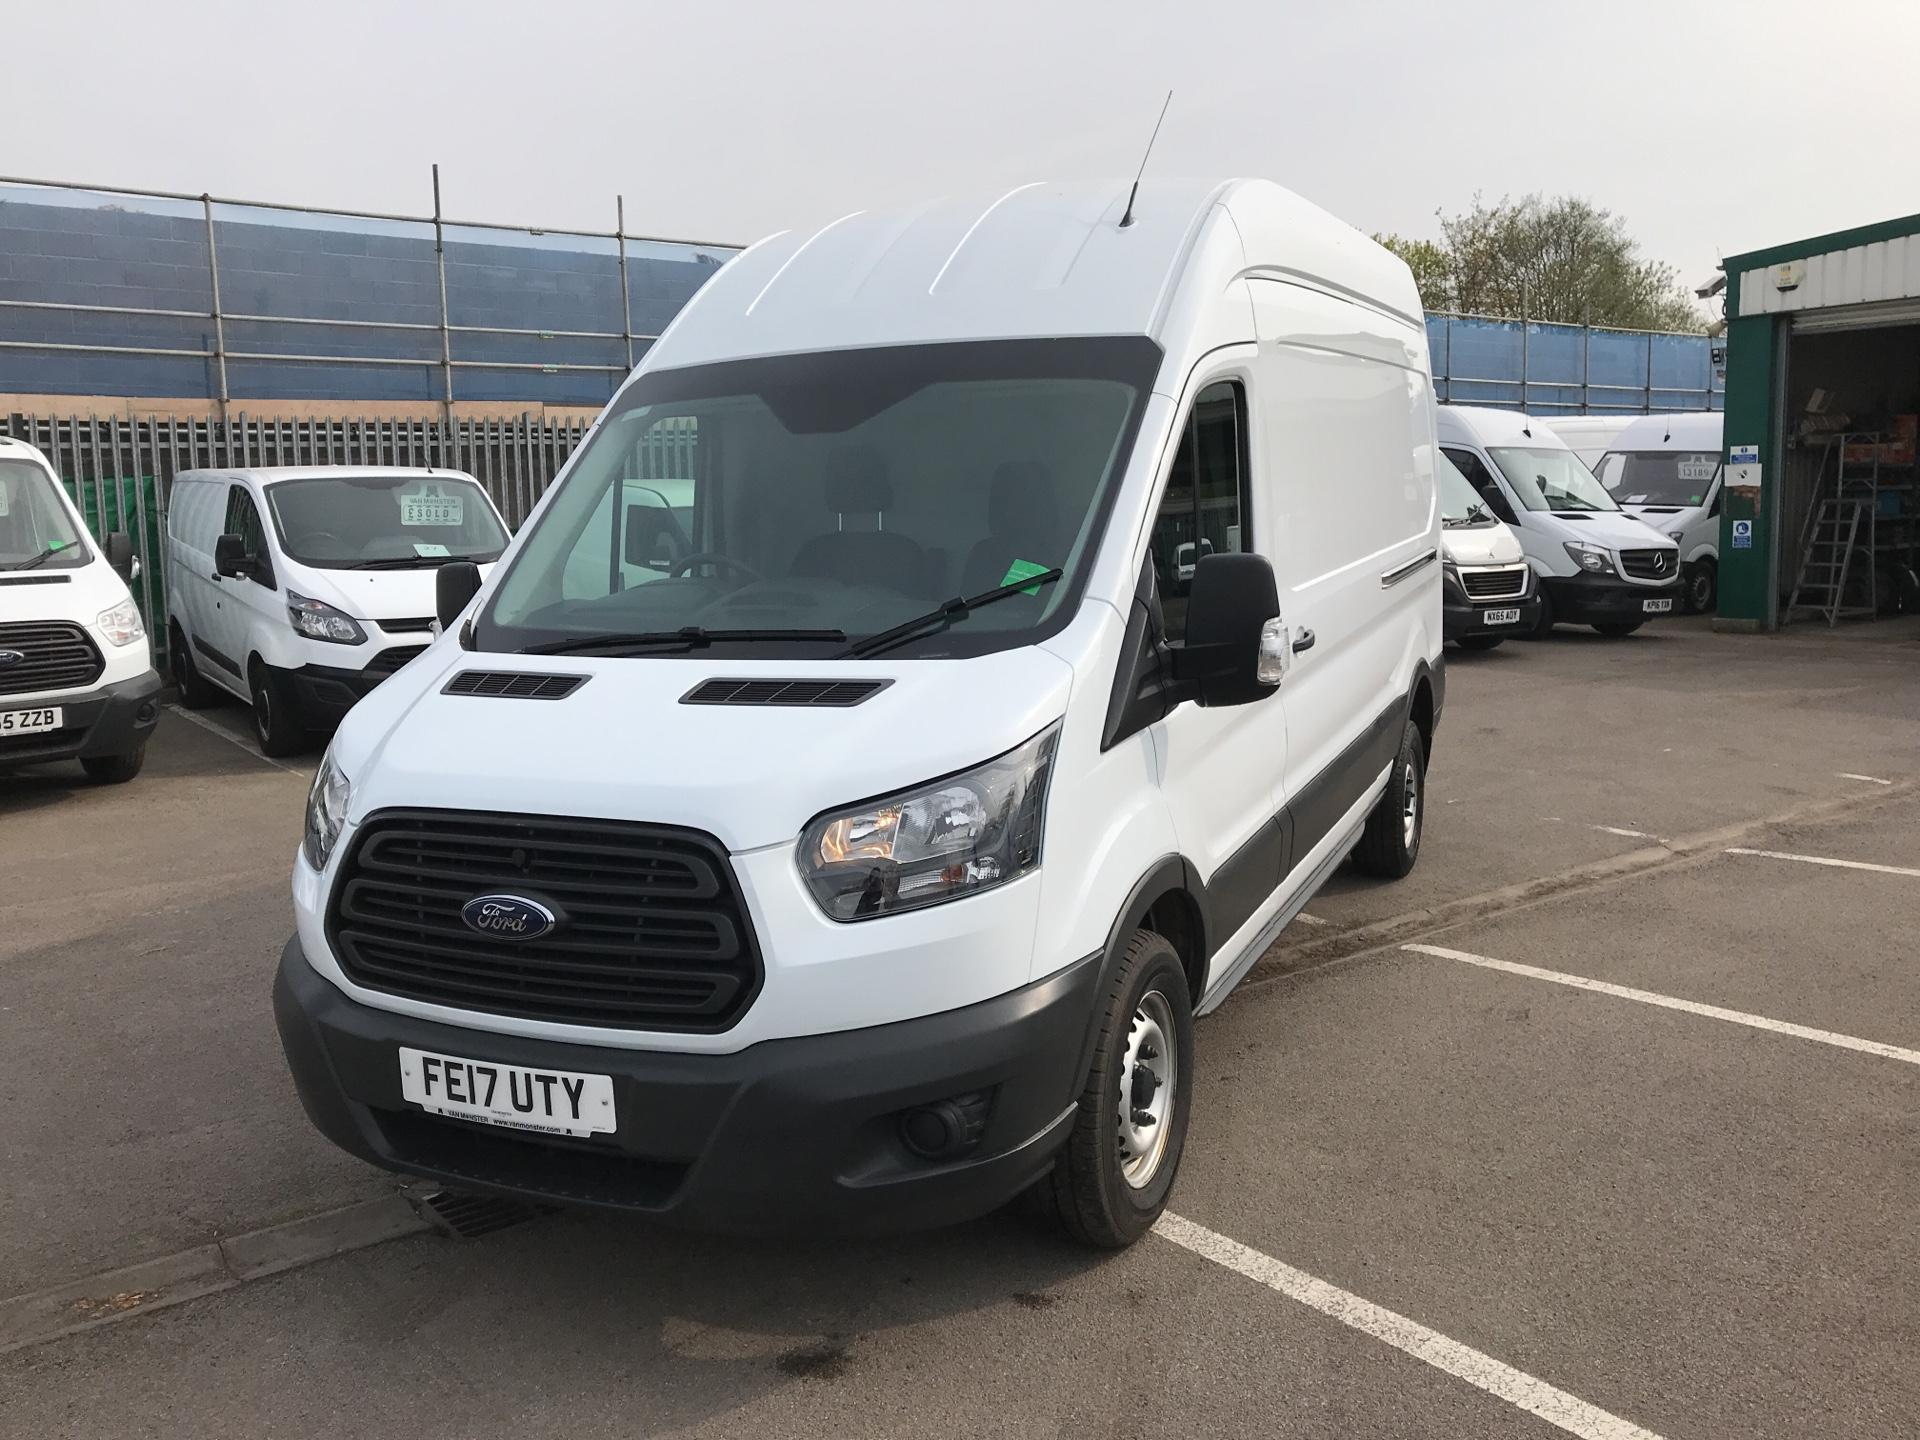 2017 Ford Transit 350 L3 H3 VAN 130PS EURO 6 (FE17UTY) Image 7